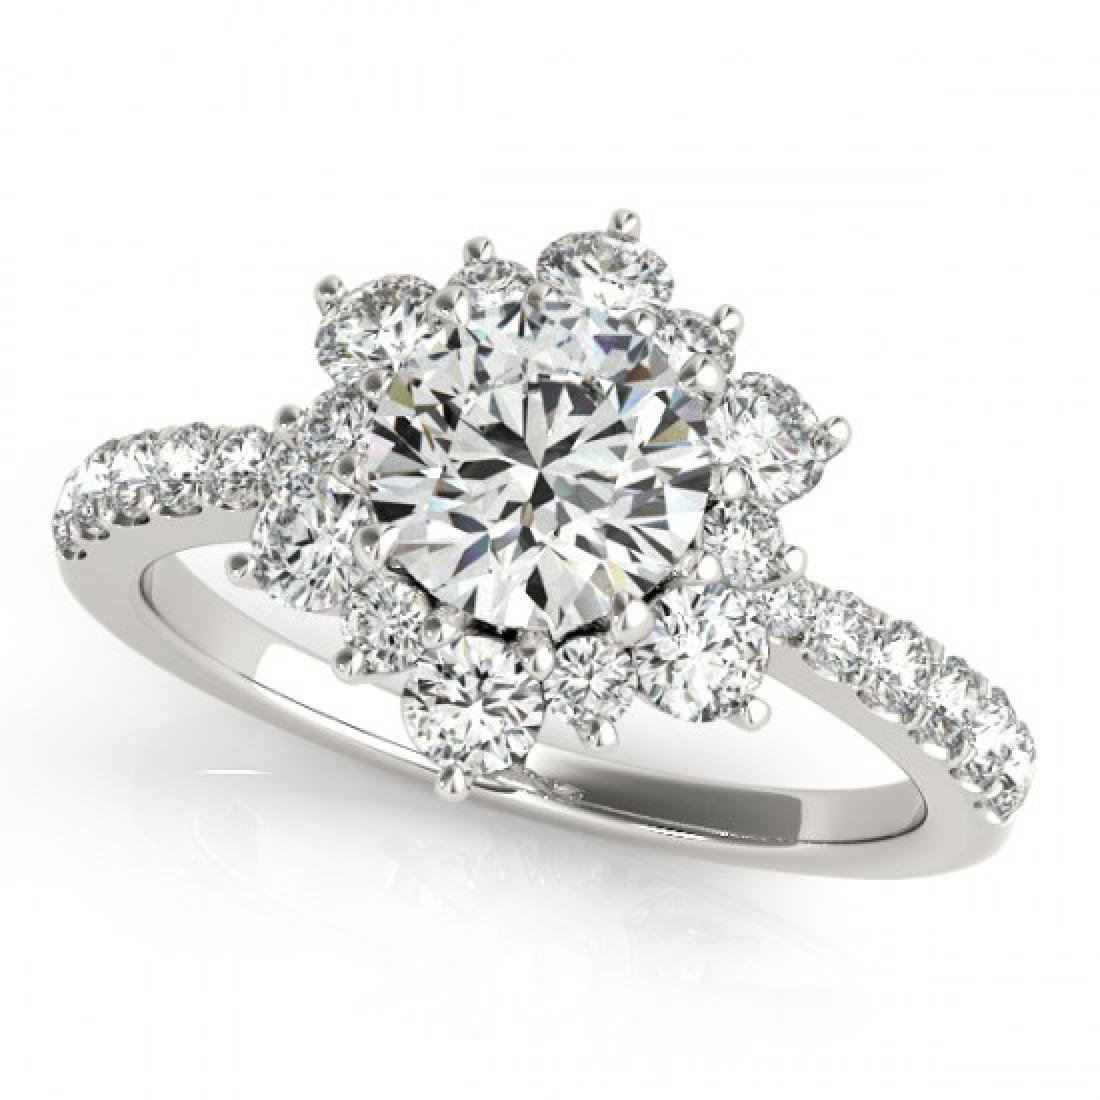 2.19 CTW Certified VS/SI Diamond Solitaire Halo Ring